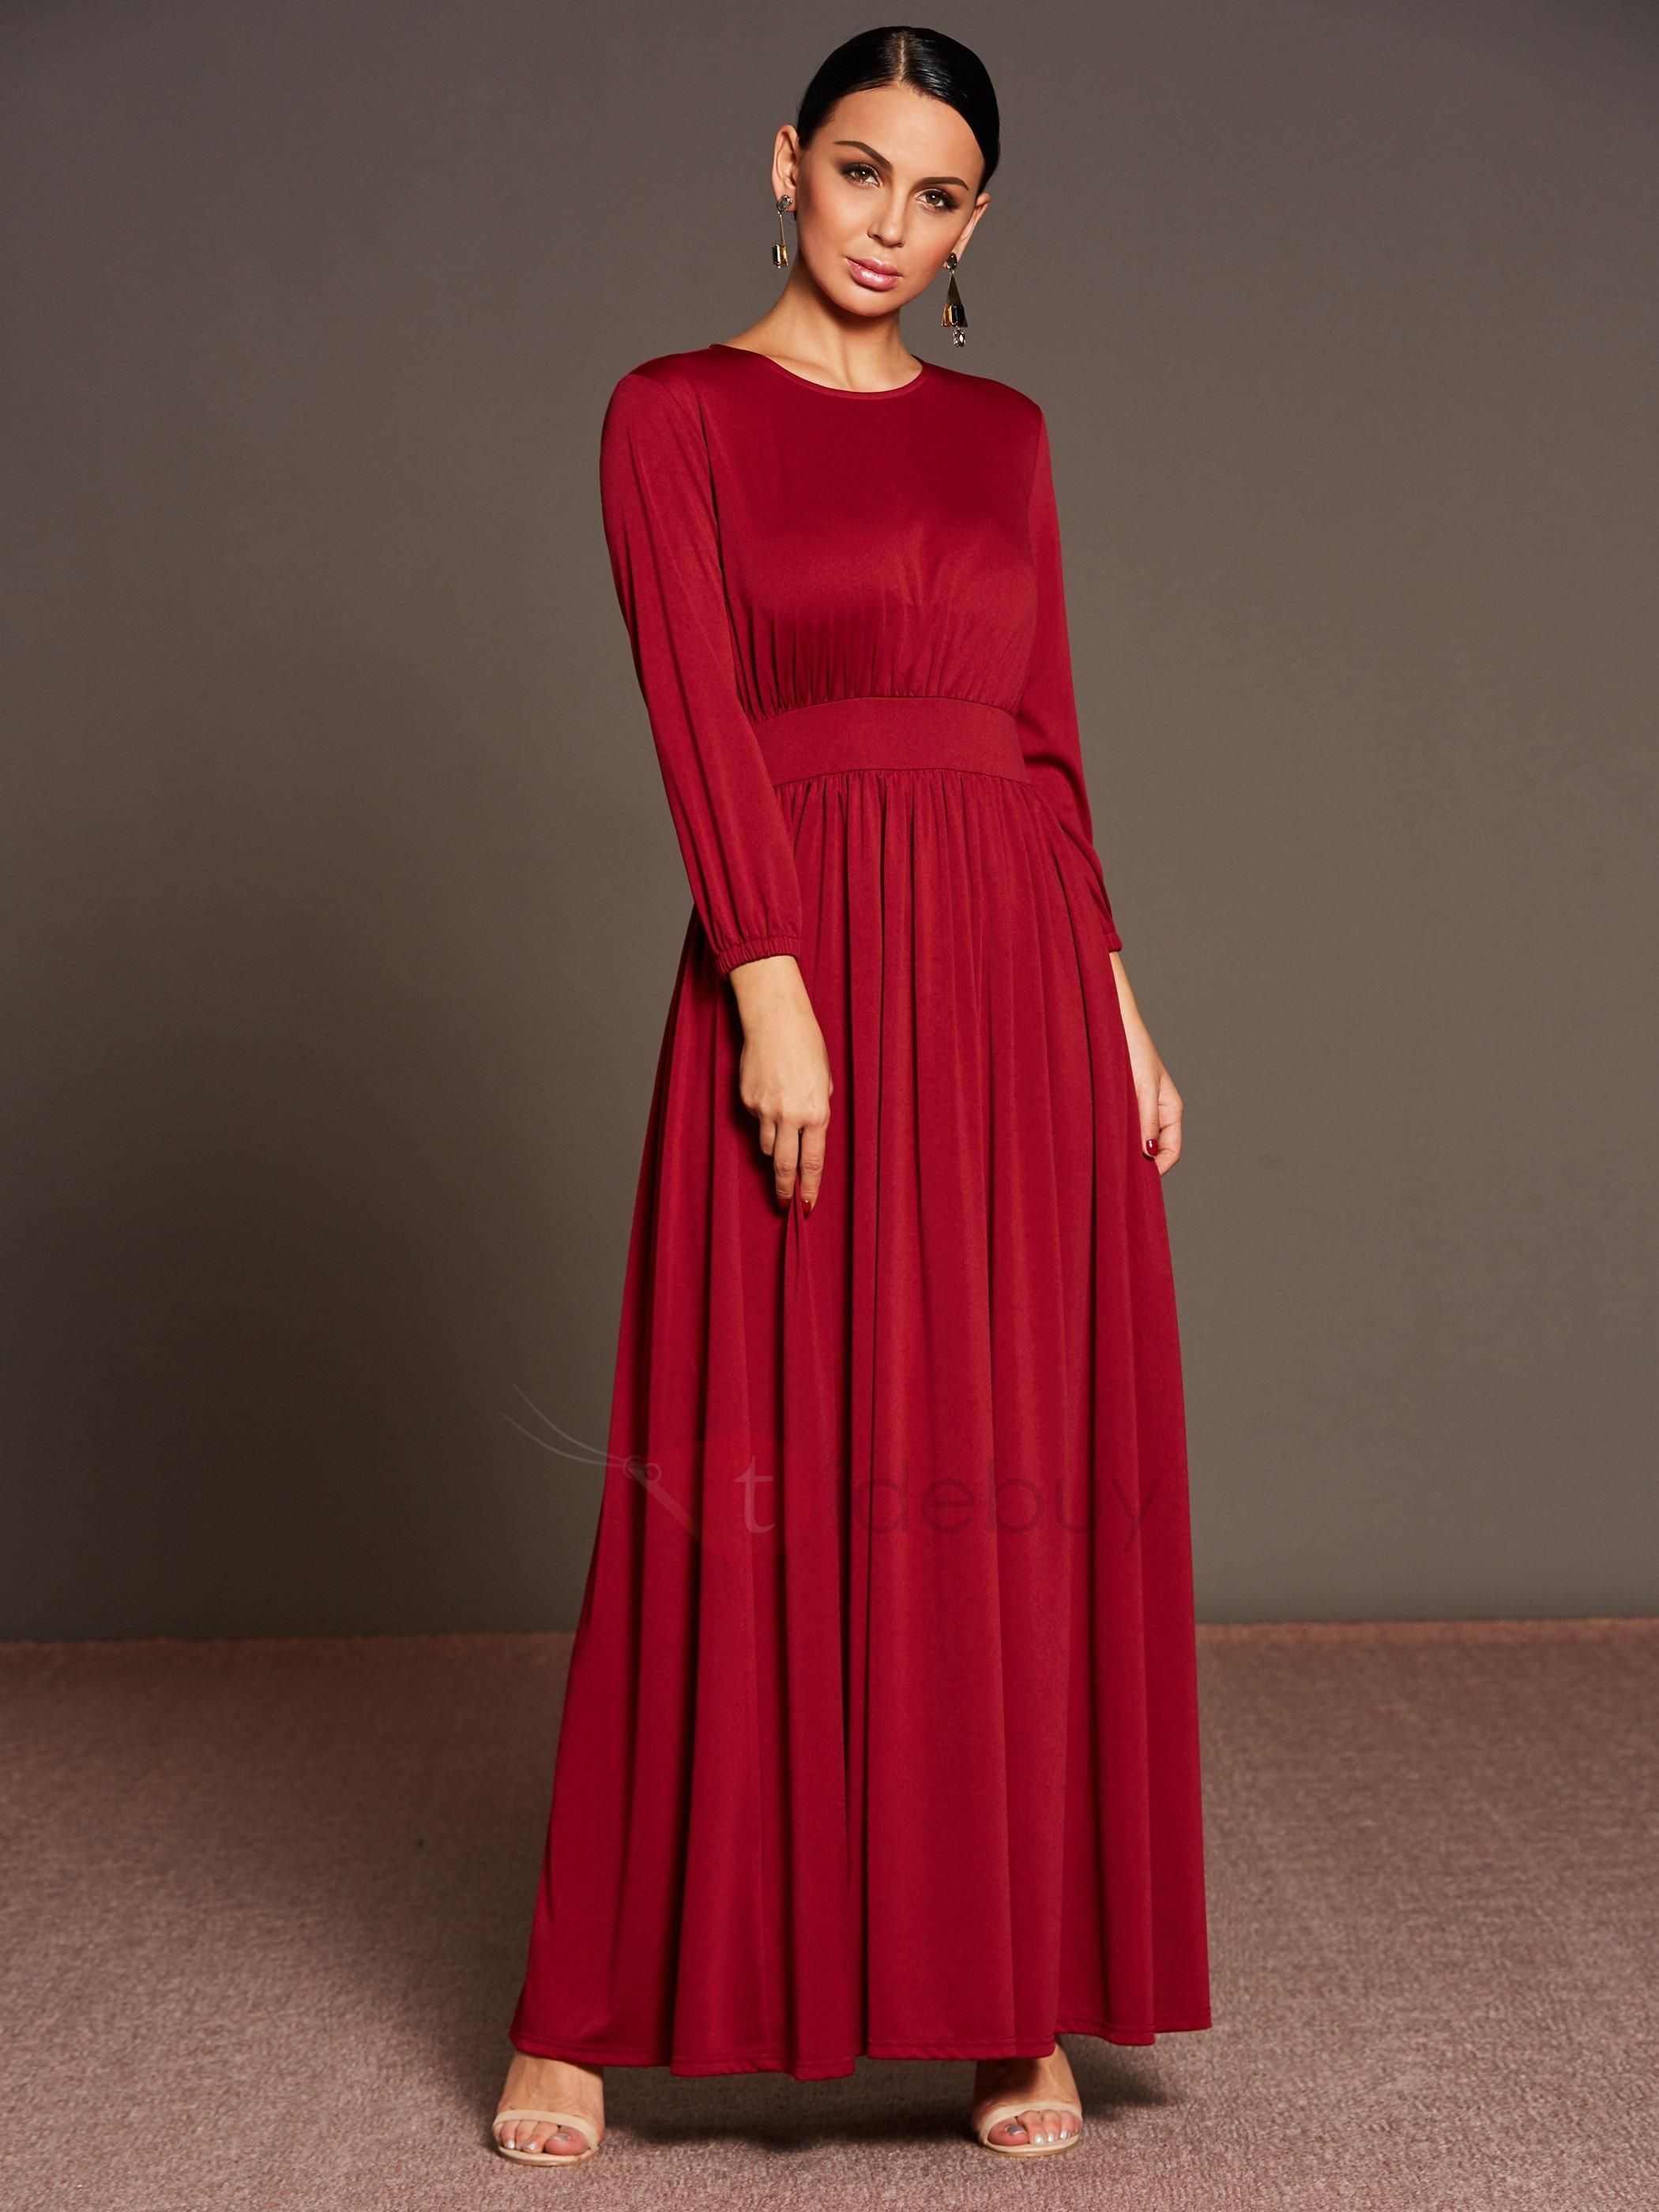 Tidebuy tidebuy solid color long sleeve pleated womens maxi dress